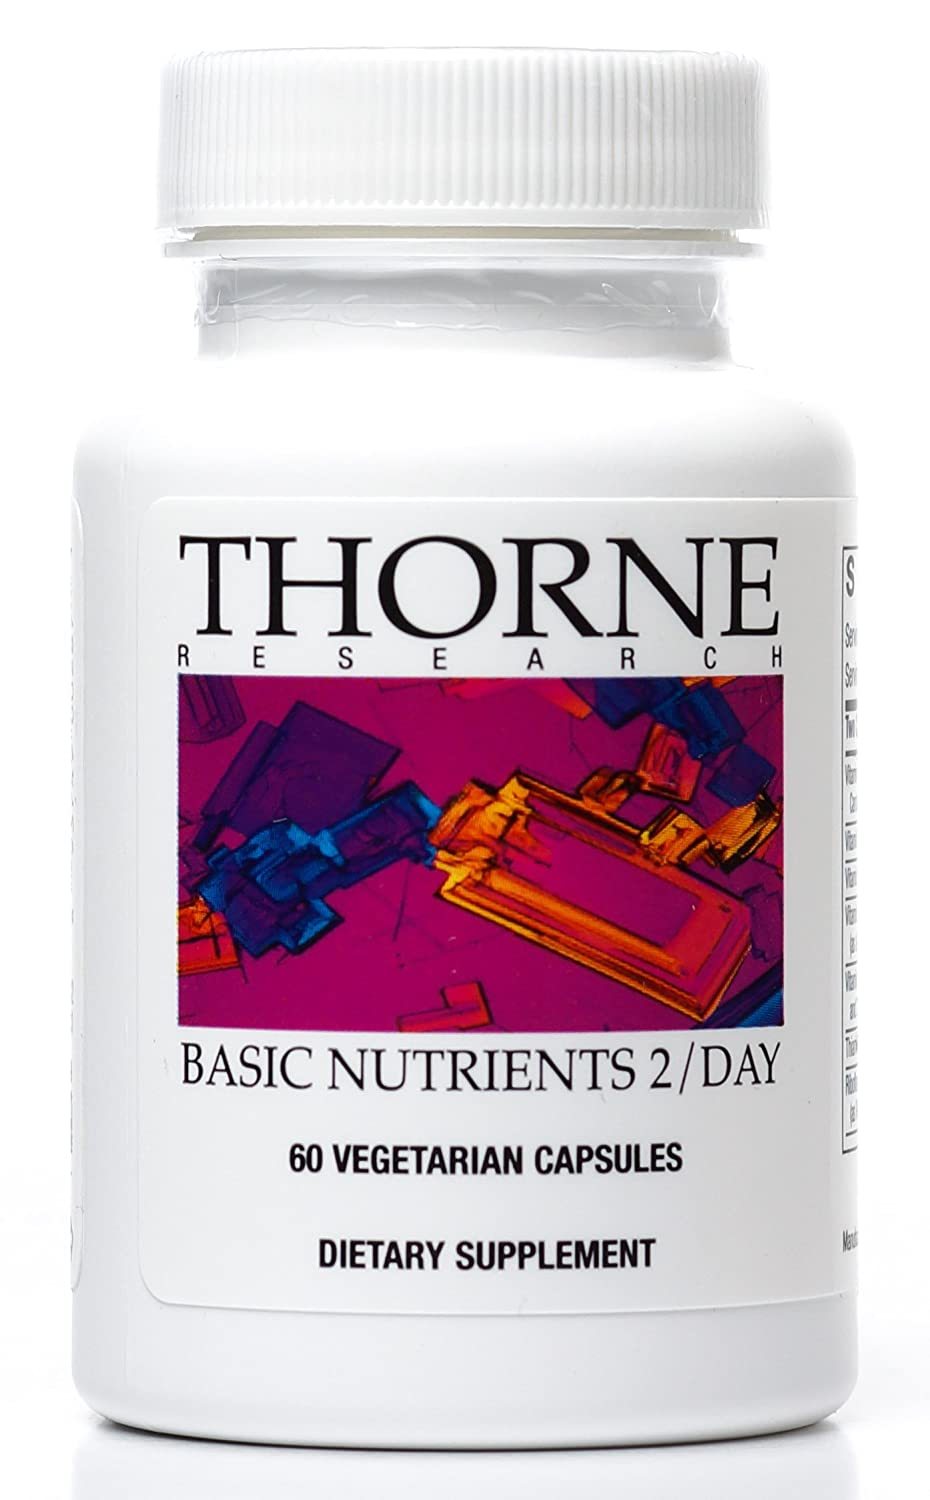 Thorne Research - Basic Nutrients 2 / Day - Complete Multivitamin/Mineral Formula